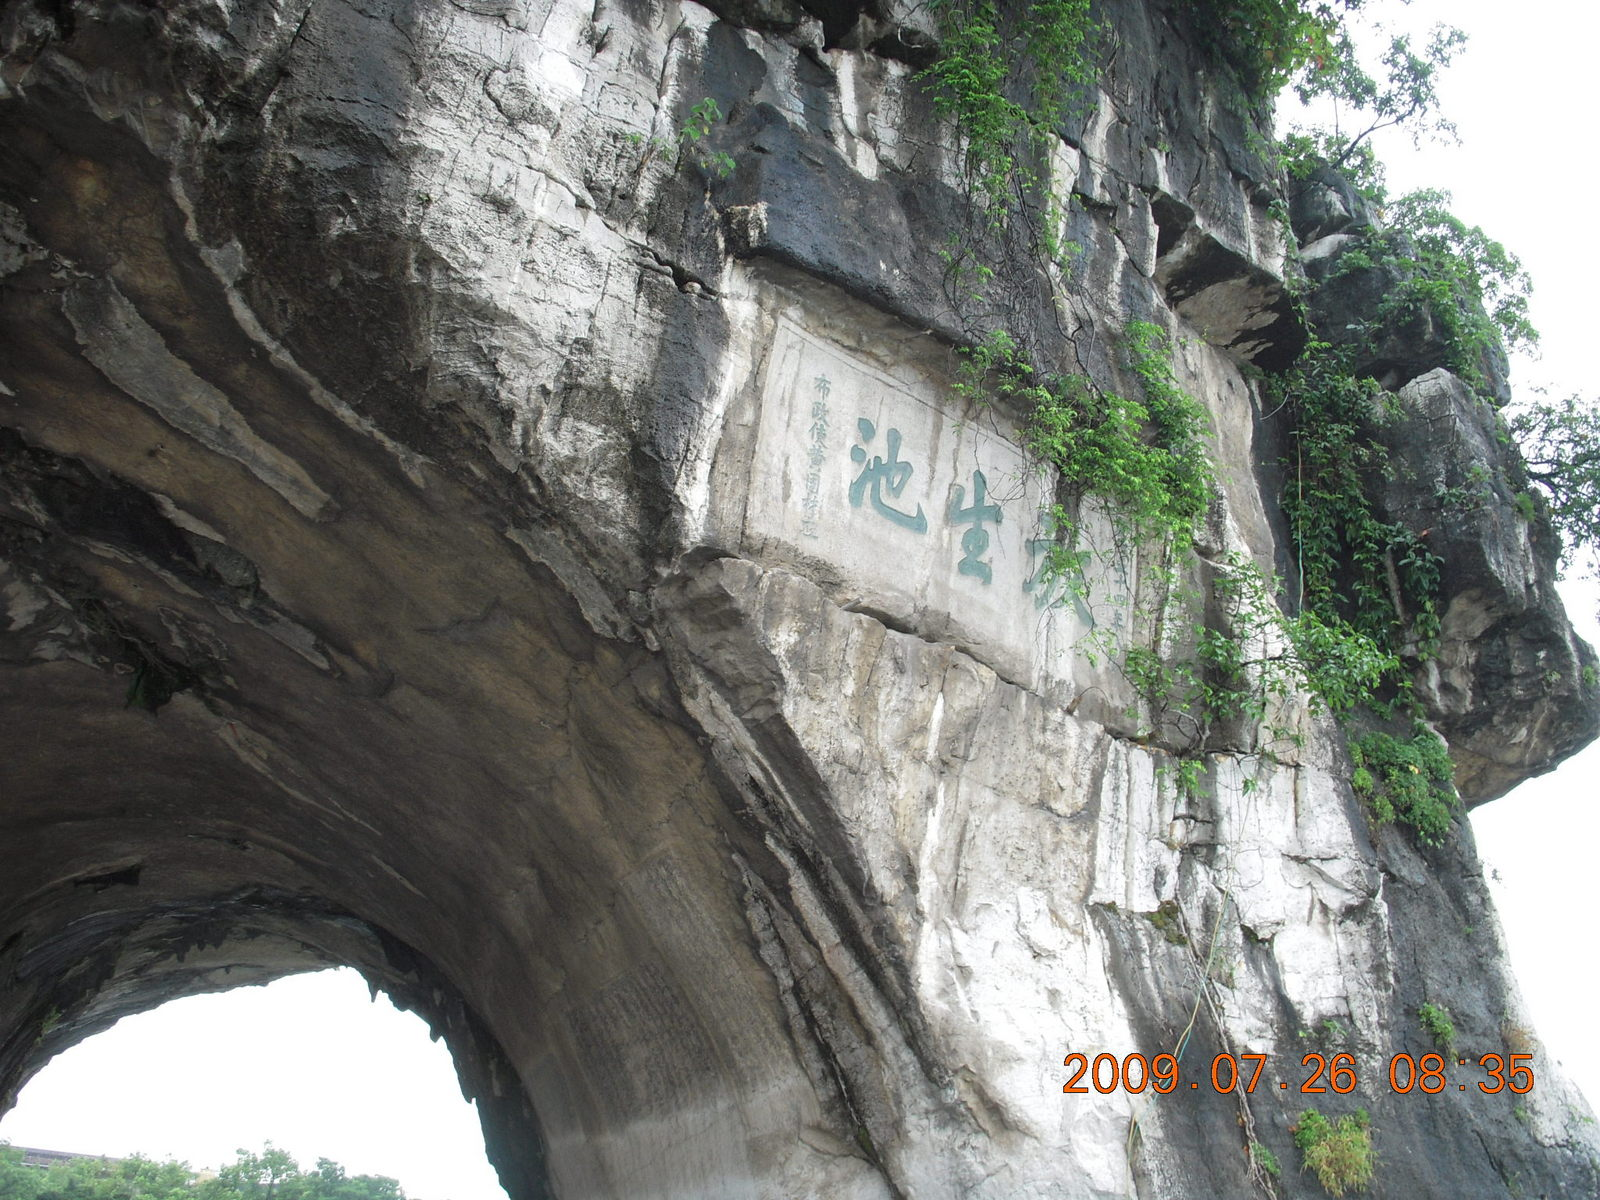 China eclipse - Guilin - Elephant Rock